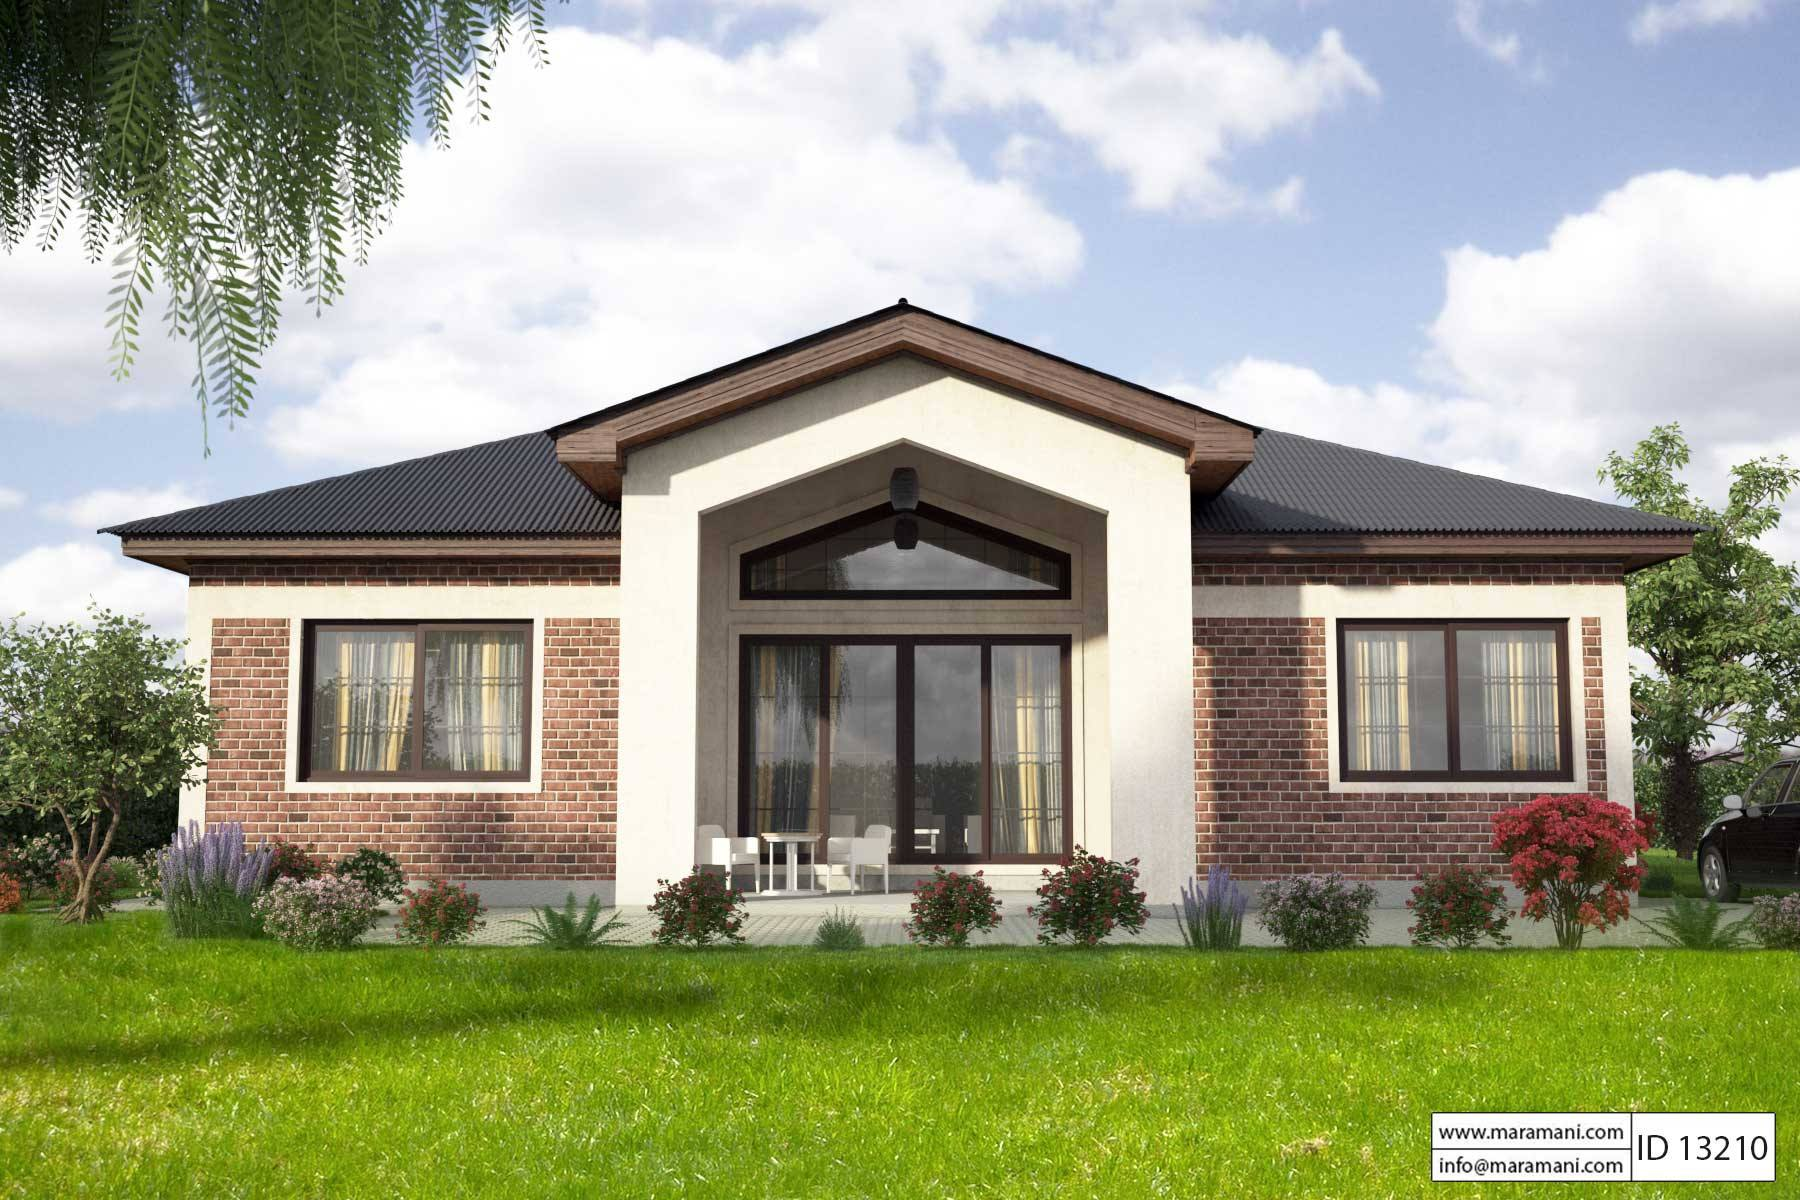 Delicieux 3 Bedroom House Plan   ID 13210